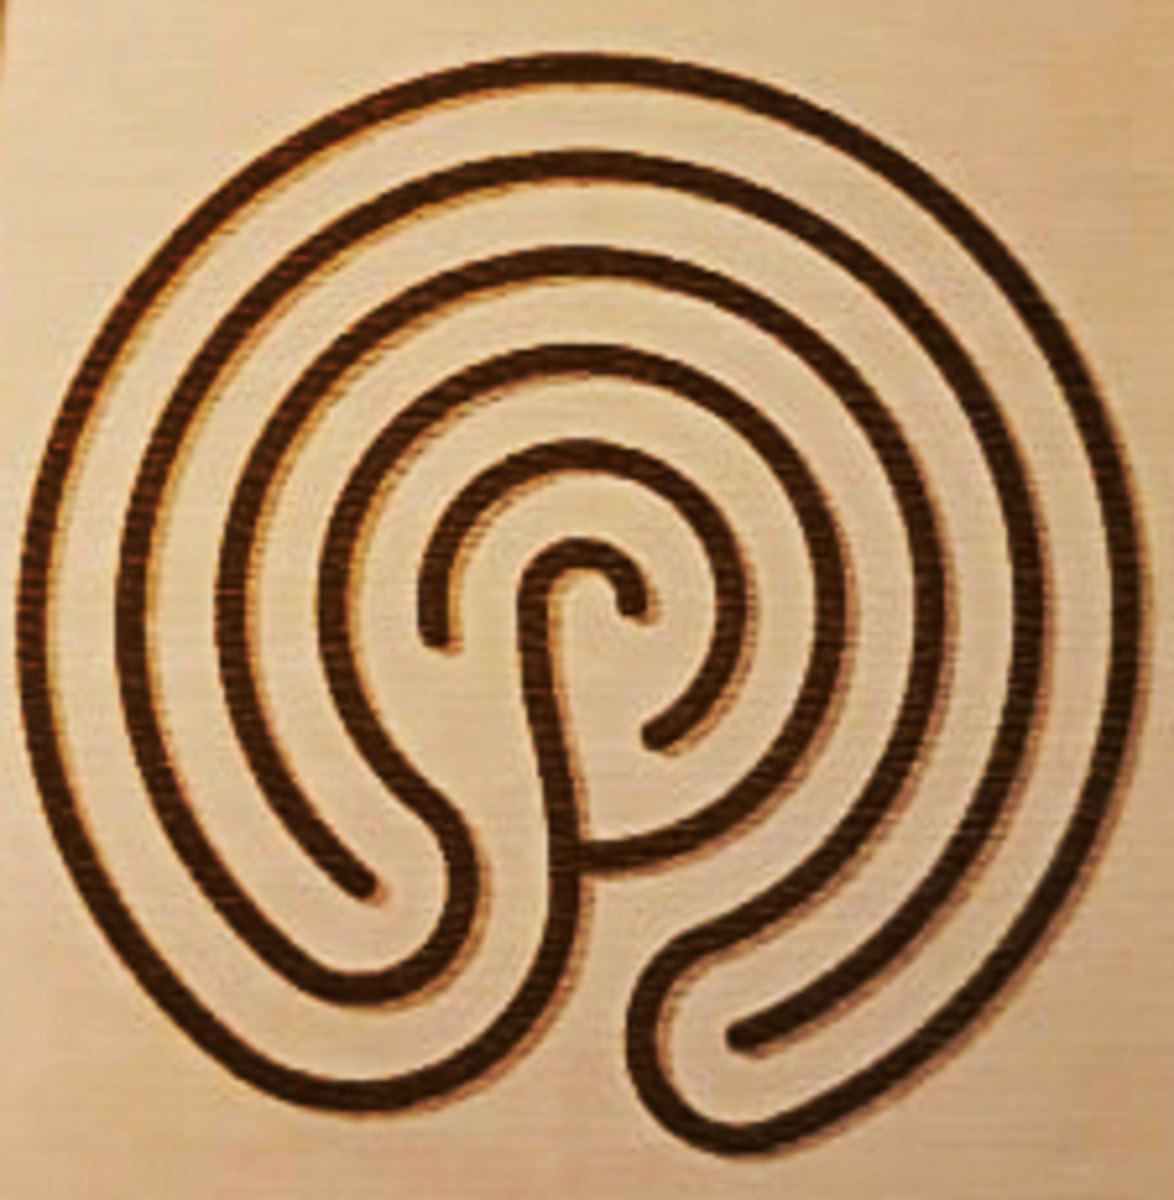 A sketch of the design of the Troy Town Maze.